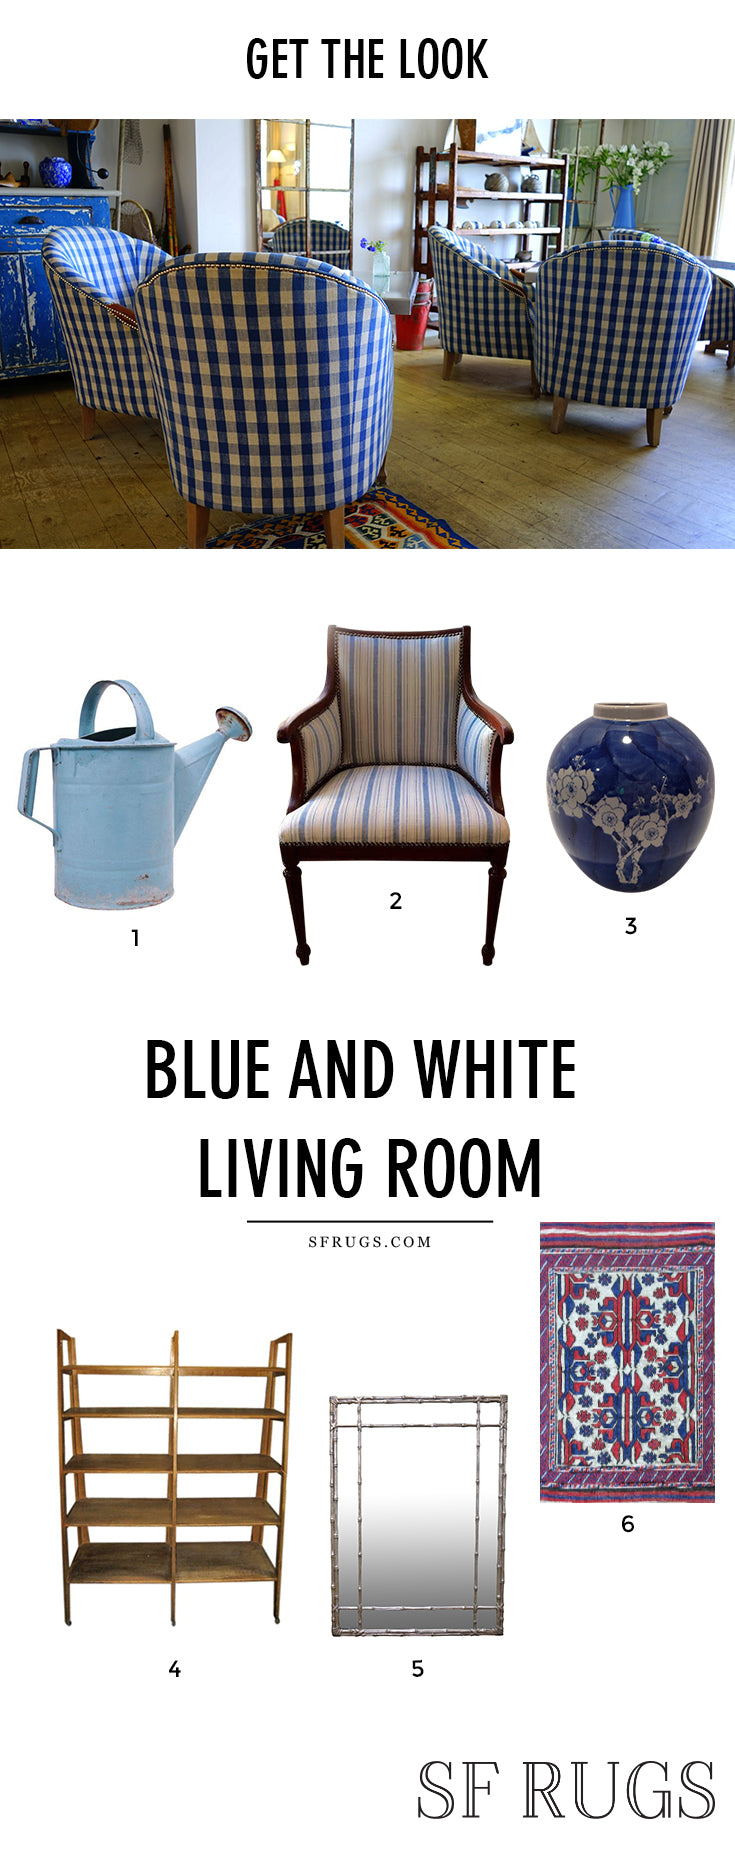 Blue and white living room, blue and white rug, blue and white decorating, blue and white pattern @sfrugsonline